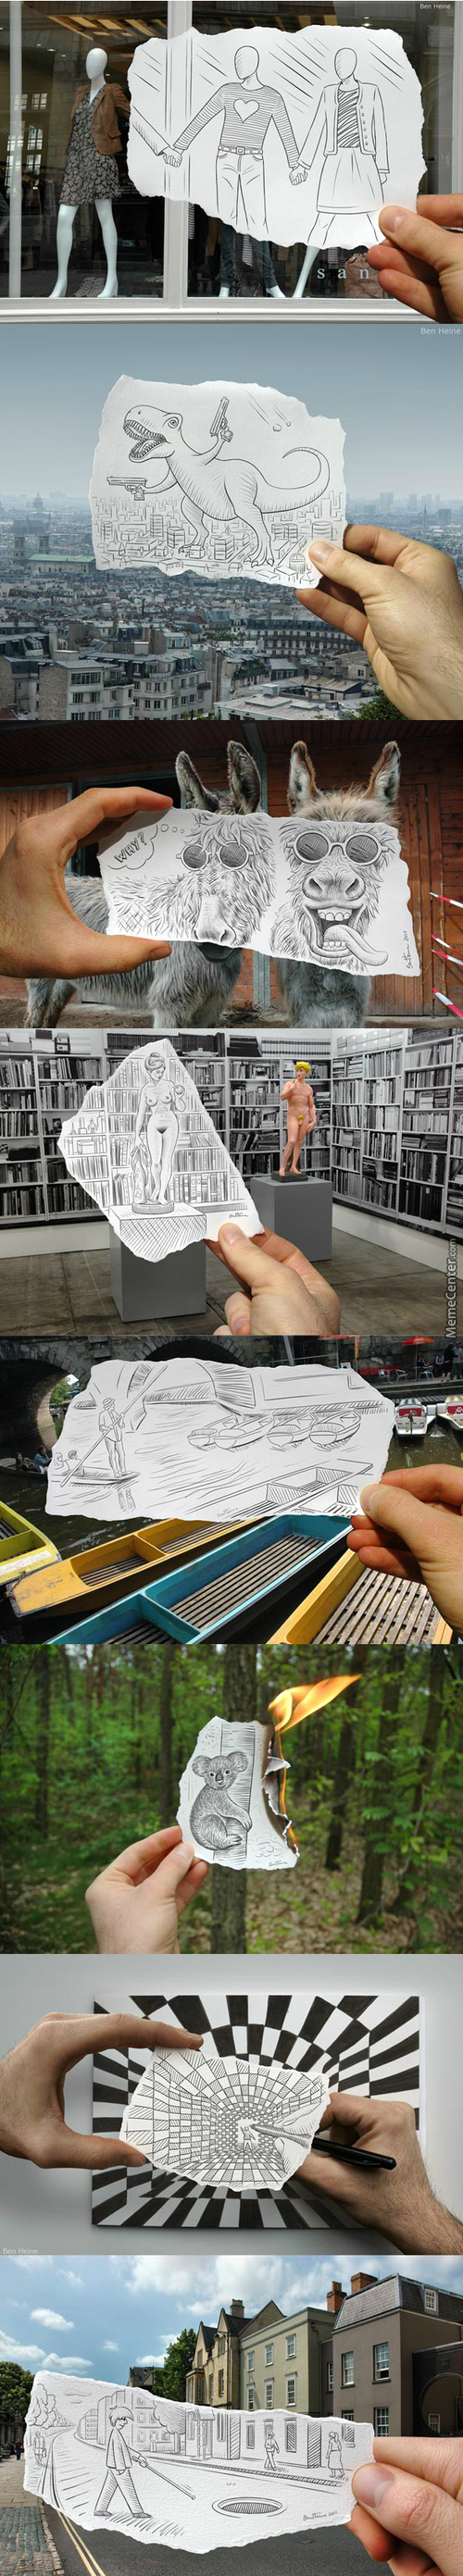 Amazingly Creative Drawing Vs Photography Vol.2